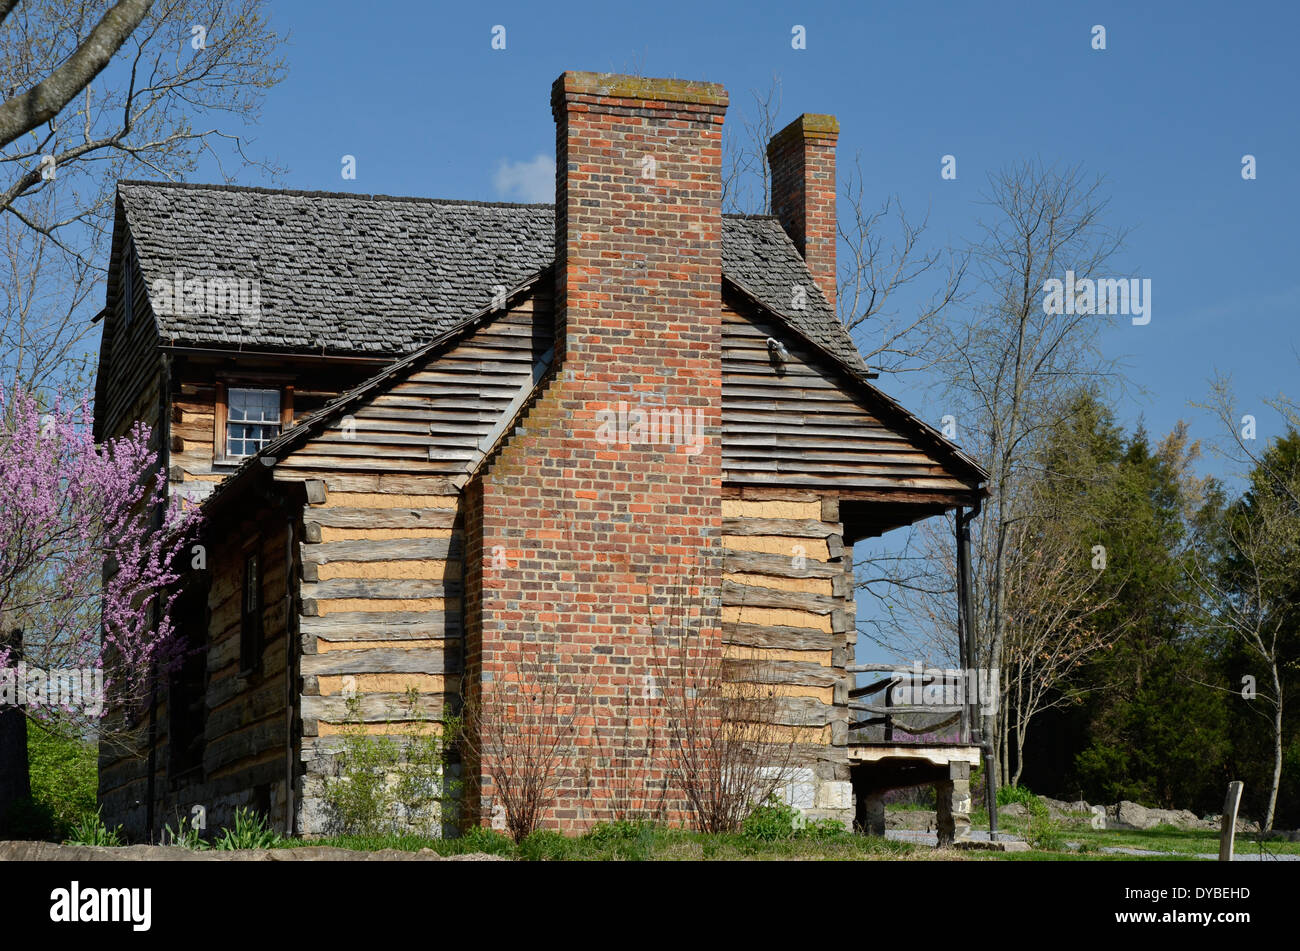 Old Log Cabin Stock Photos & Old Log Cabin Stock Images - Alamy